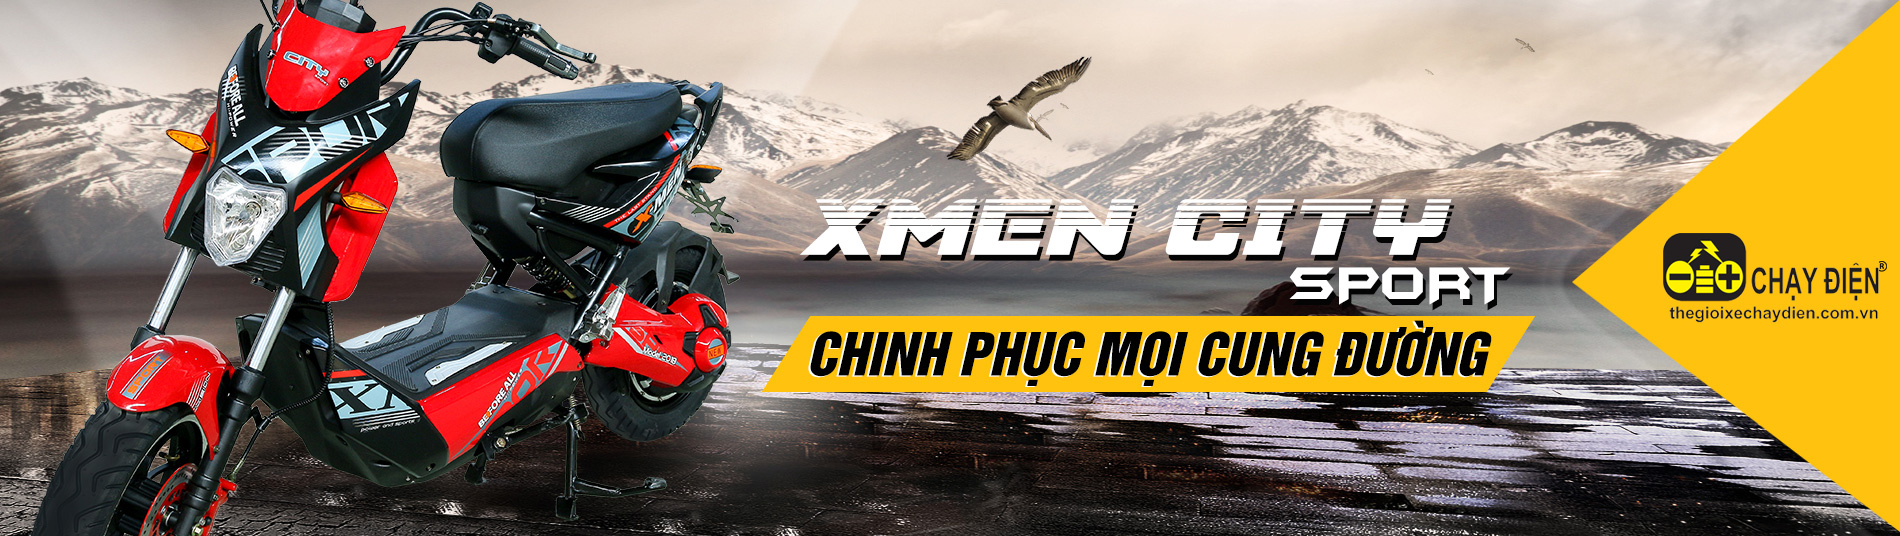 Xe máy điện X-Men City Sport Before All